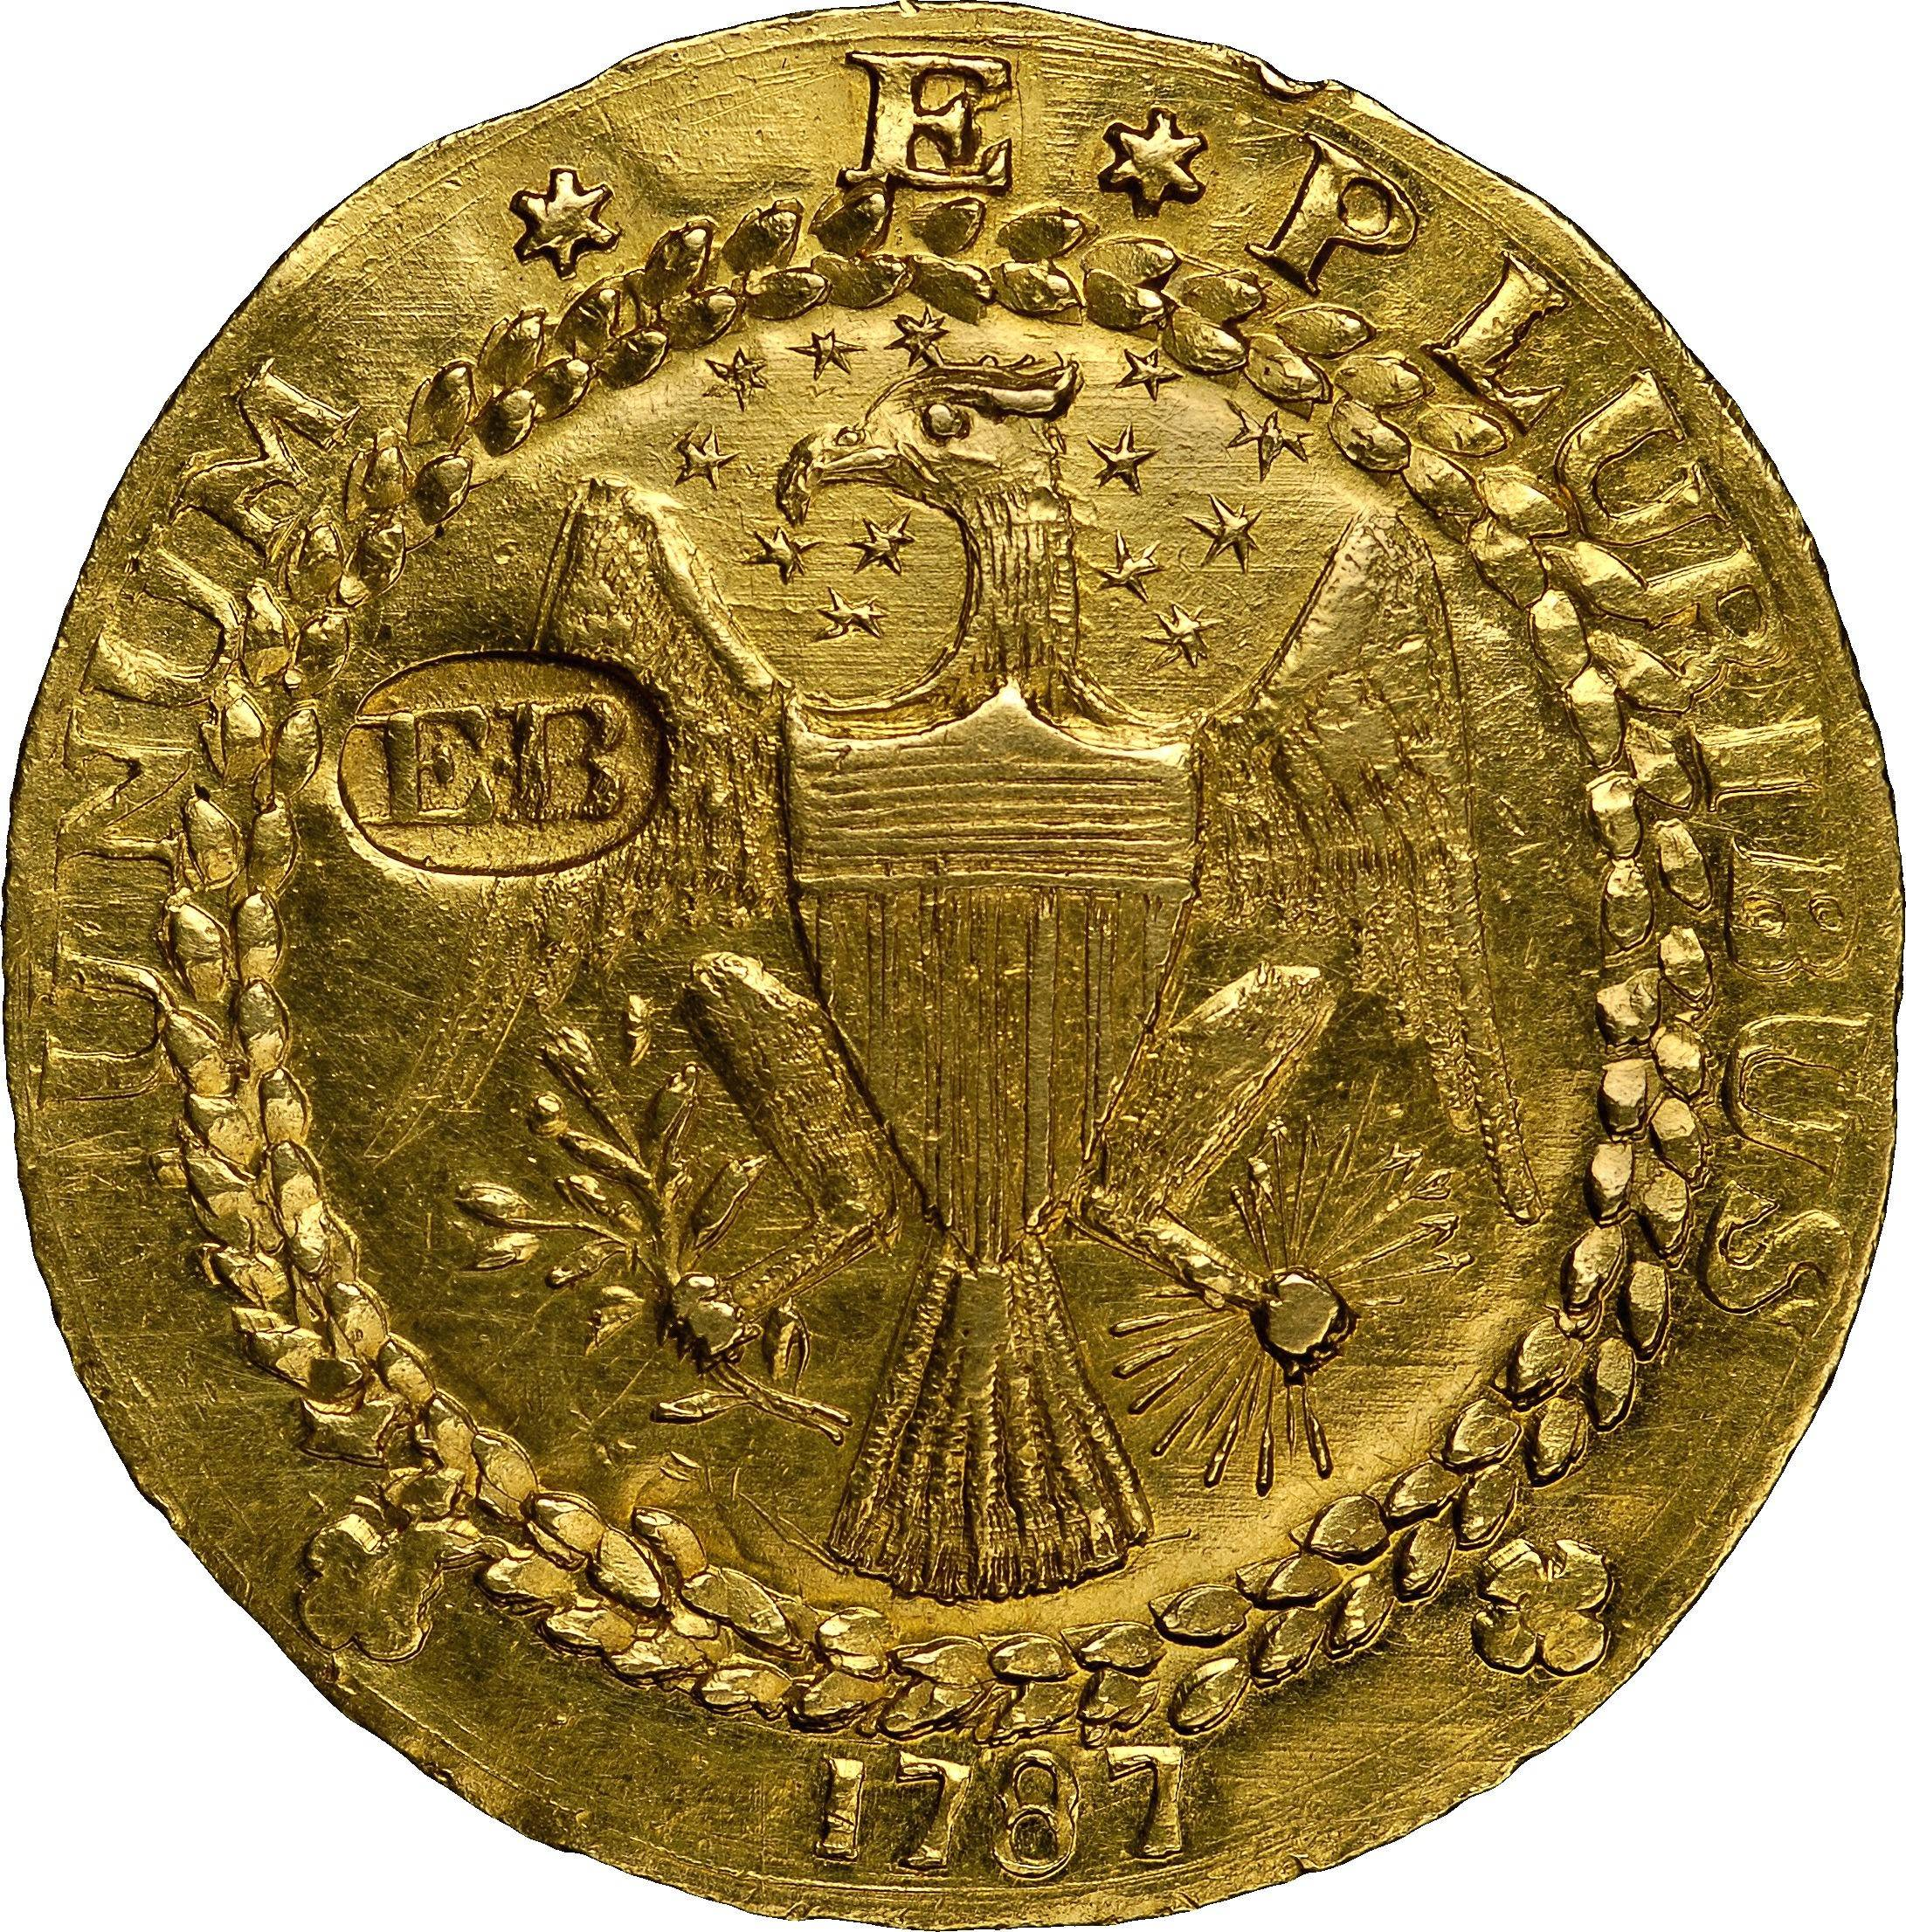 A Brasher Doubloon, the first gold coin made for the United States in 1787 by George Washington's New York City neighbor, goldsmith Ephraim Brasher, is insured for $10 million for its display at the World's Fair of Money in Rosemont.